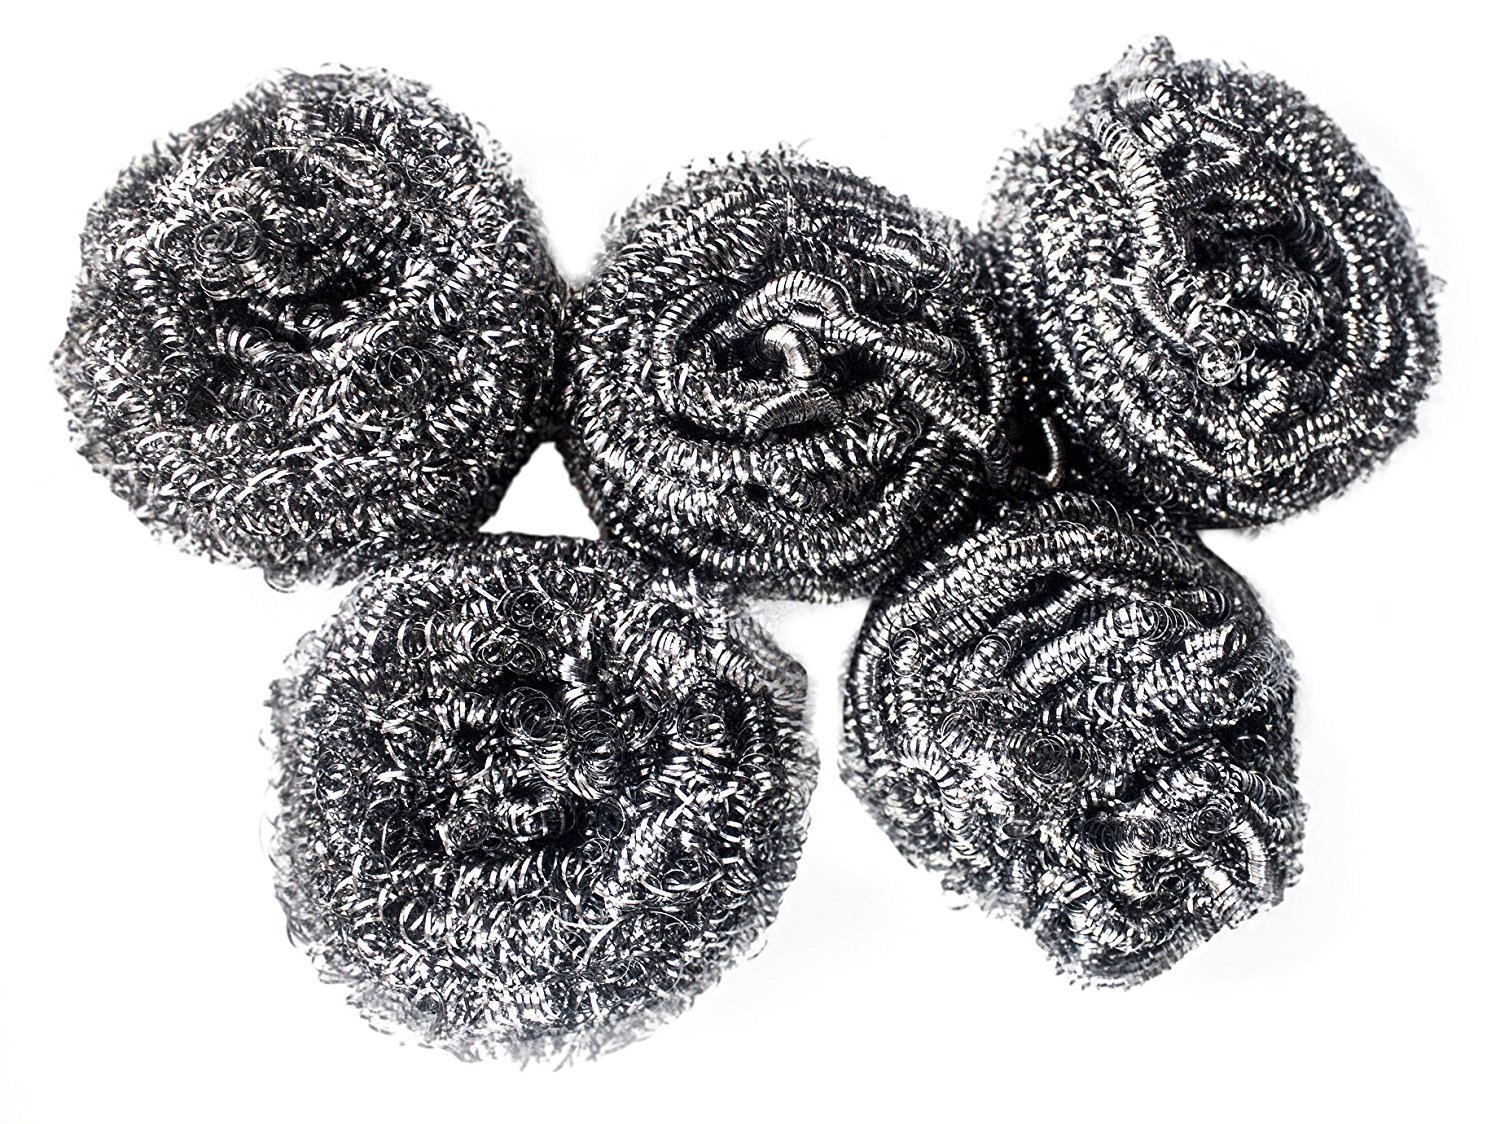 Powerful Dishwashing Metal Scouring Pads Set of 5 - Removes Grease, Oil Completely from Plates, Cups, Glassware, Baking Tins - Long Lasting Satisfaction Guaranteed!